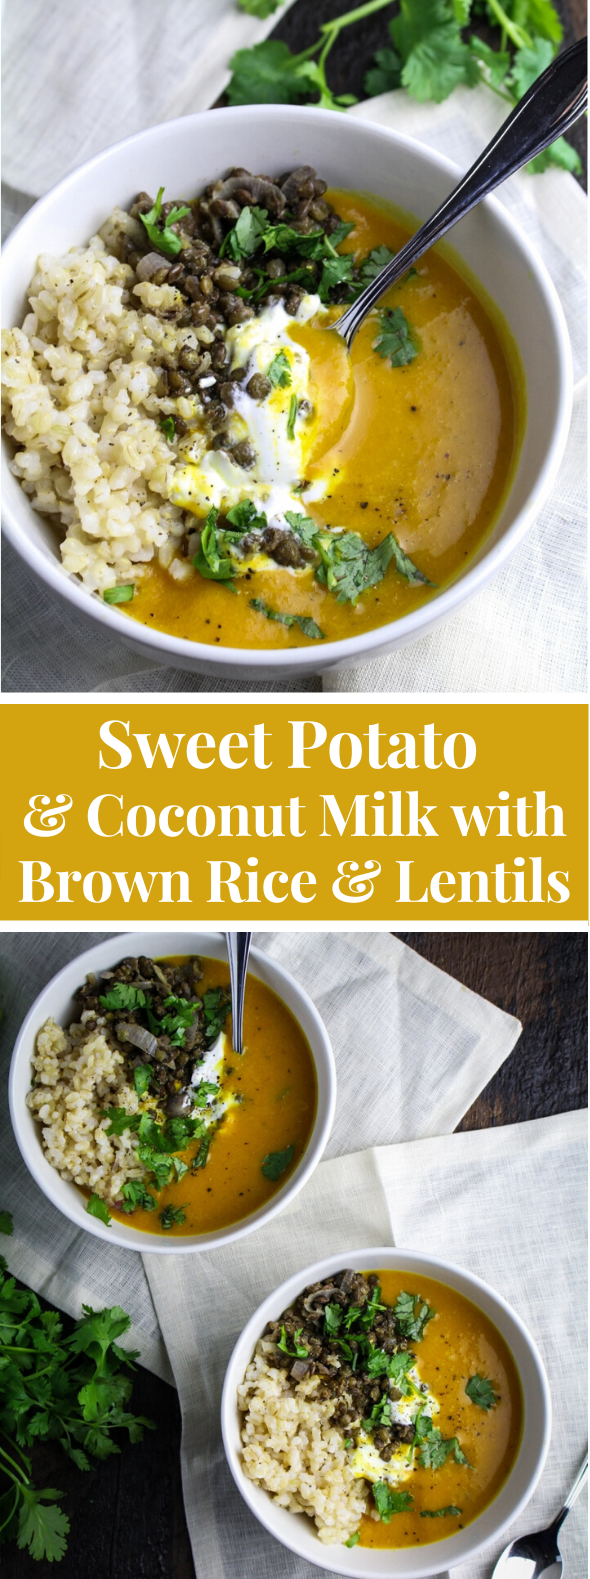 Sweet Potato and Coconut Milk with Brown Rice and Lentils #vegetarian #healthy